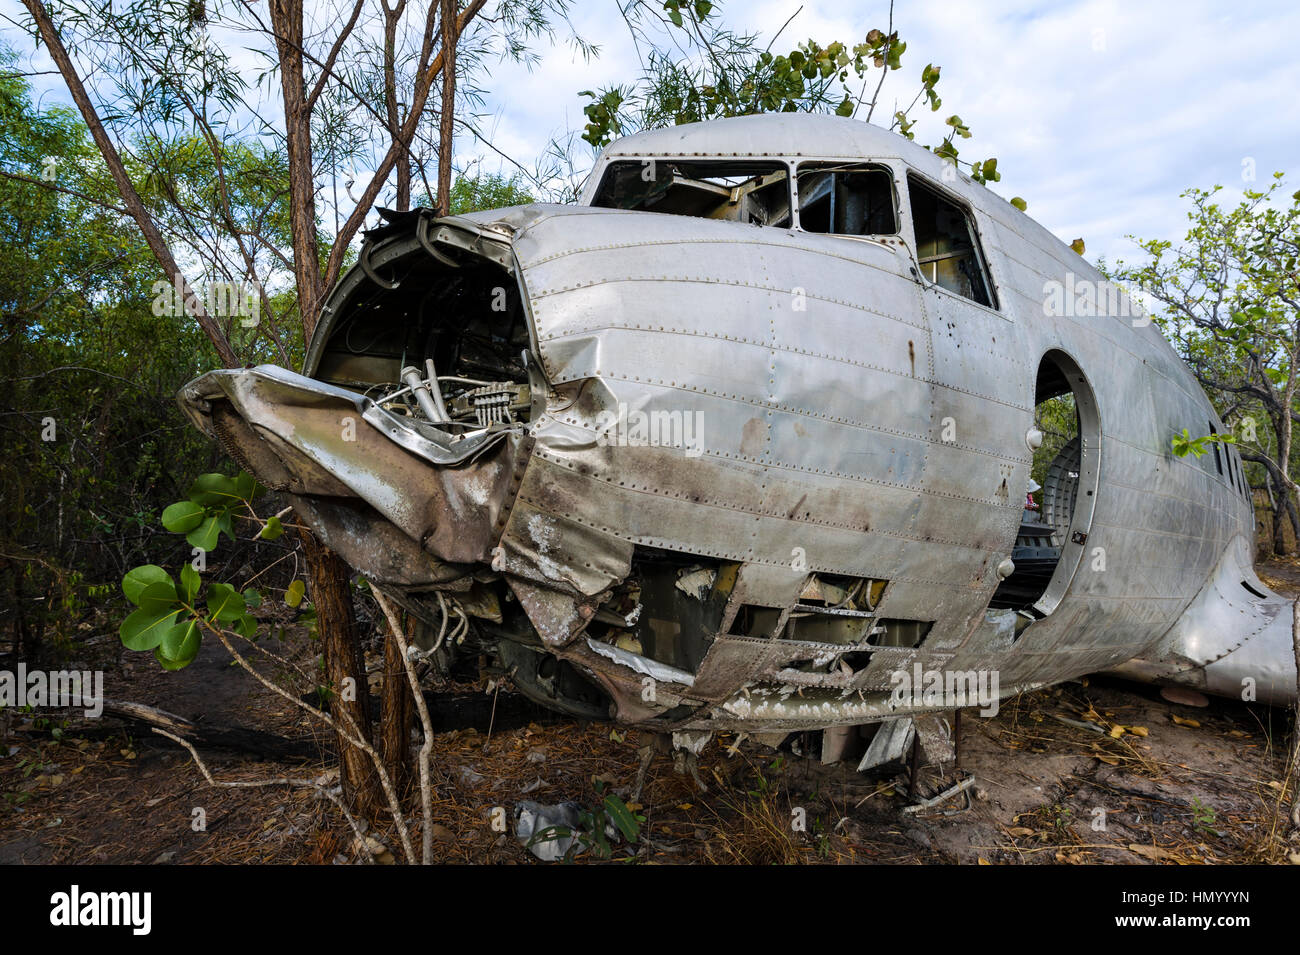 The wrecked cockpit and fuselage of a DC-3 in the forest after crashing during WWII. - Stock Image